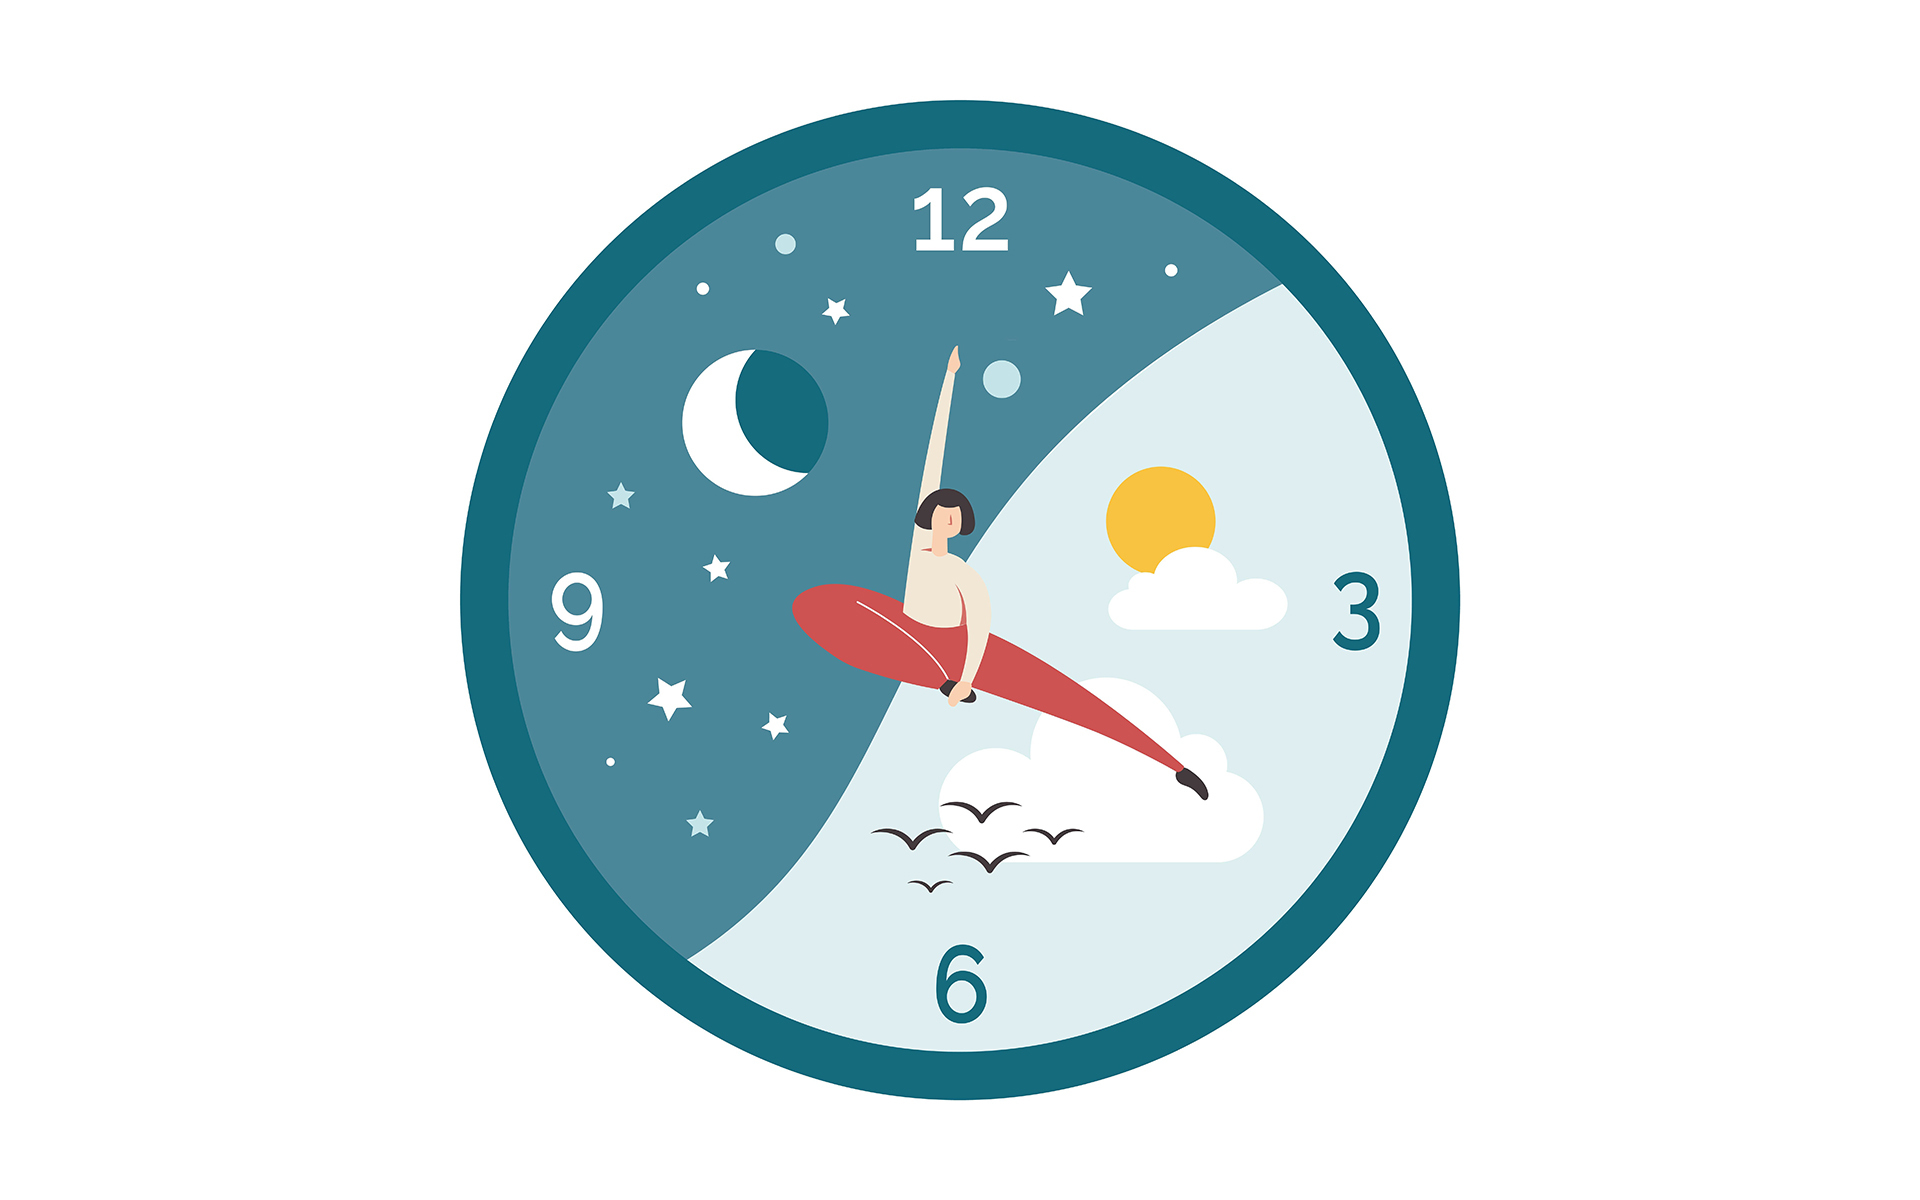 Mindful readers talk about the importance of everyday rituals - a clock with a woman on it pointing to daily habits